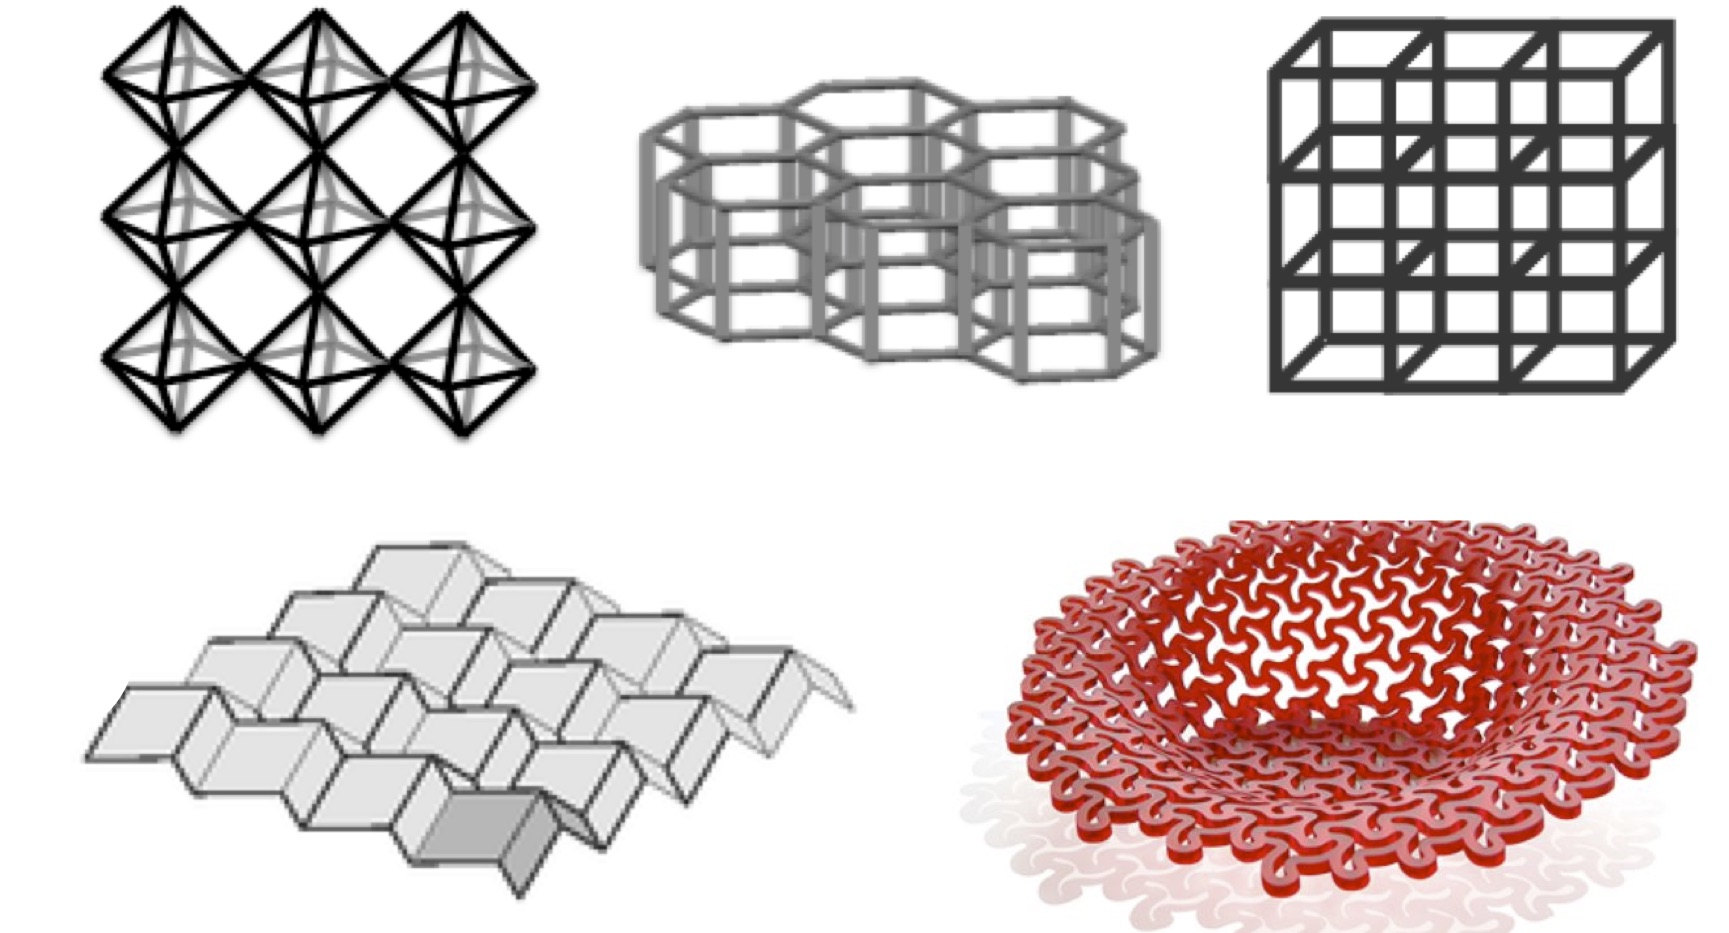 Structural Electronic Materials Lab - Organic Structural Metamaterials -Research overview figure-3.jpg